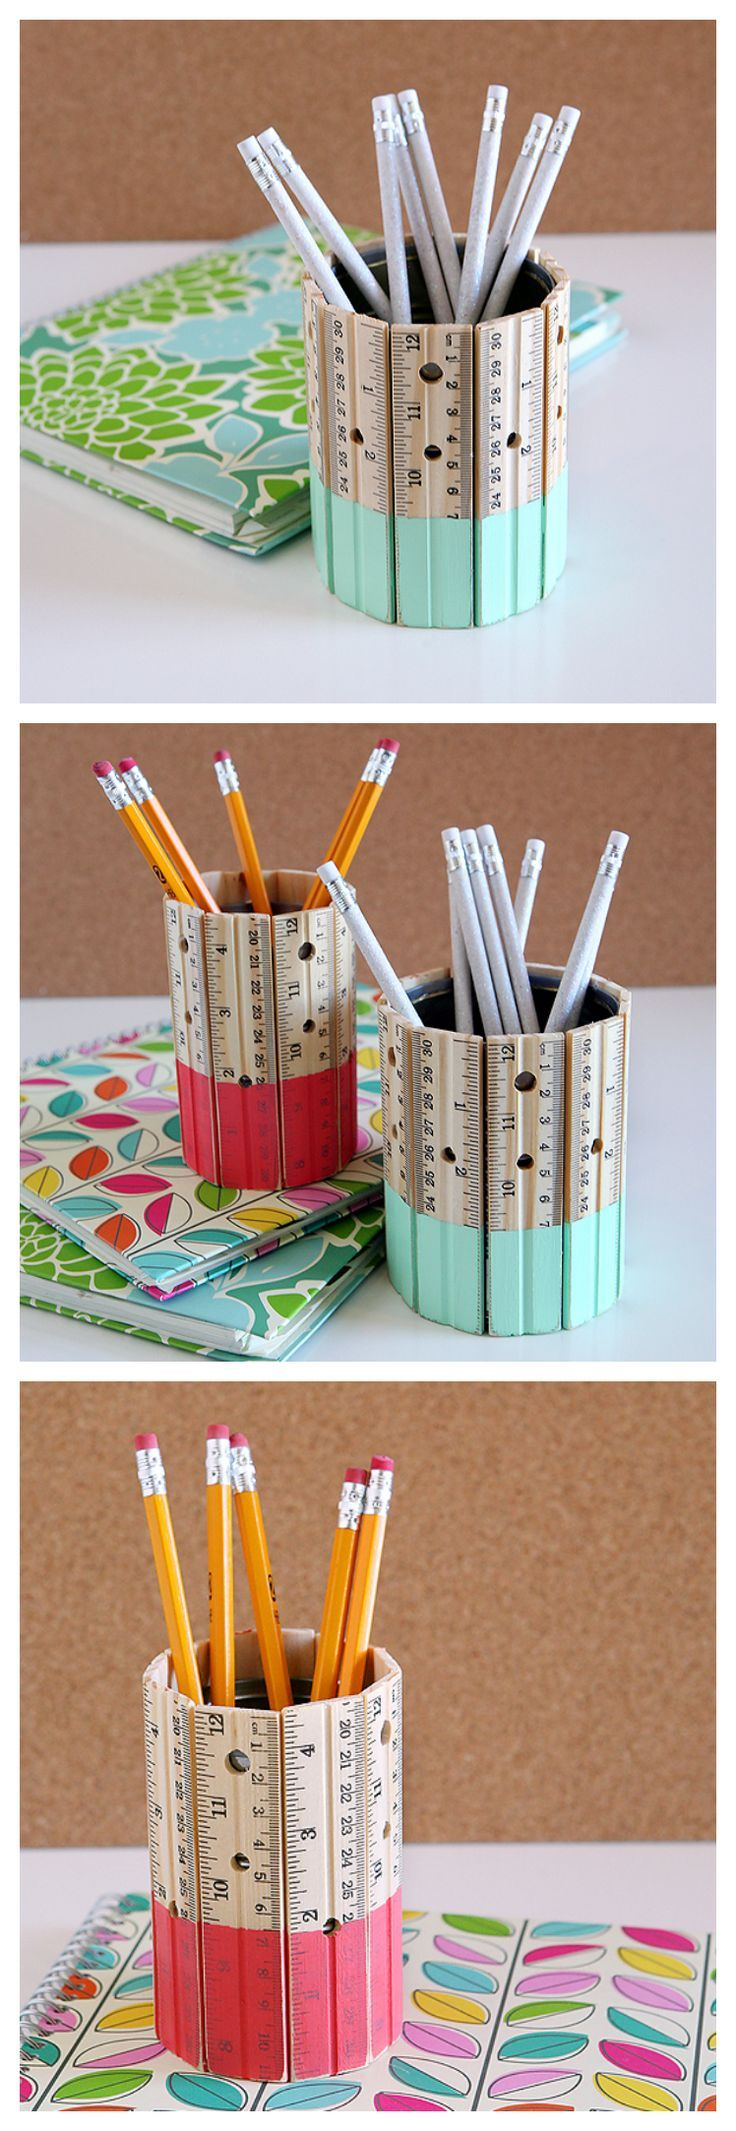 DIY Ruler Pencil Holder This Pencil Holder